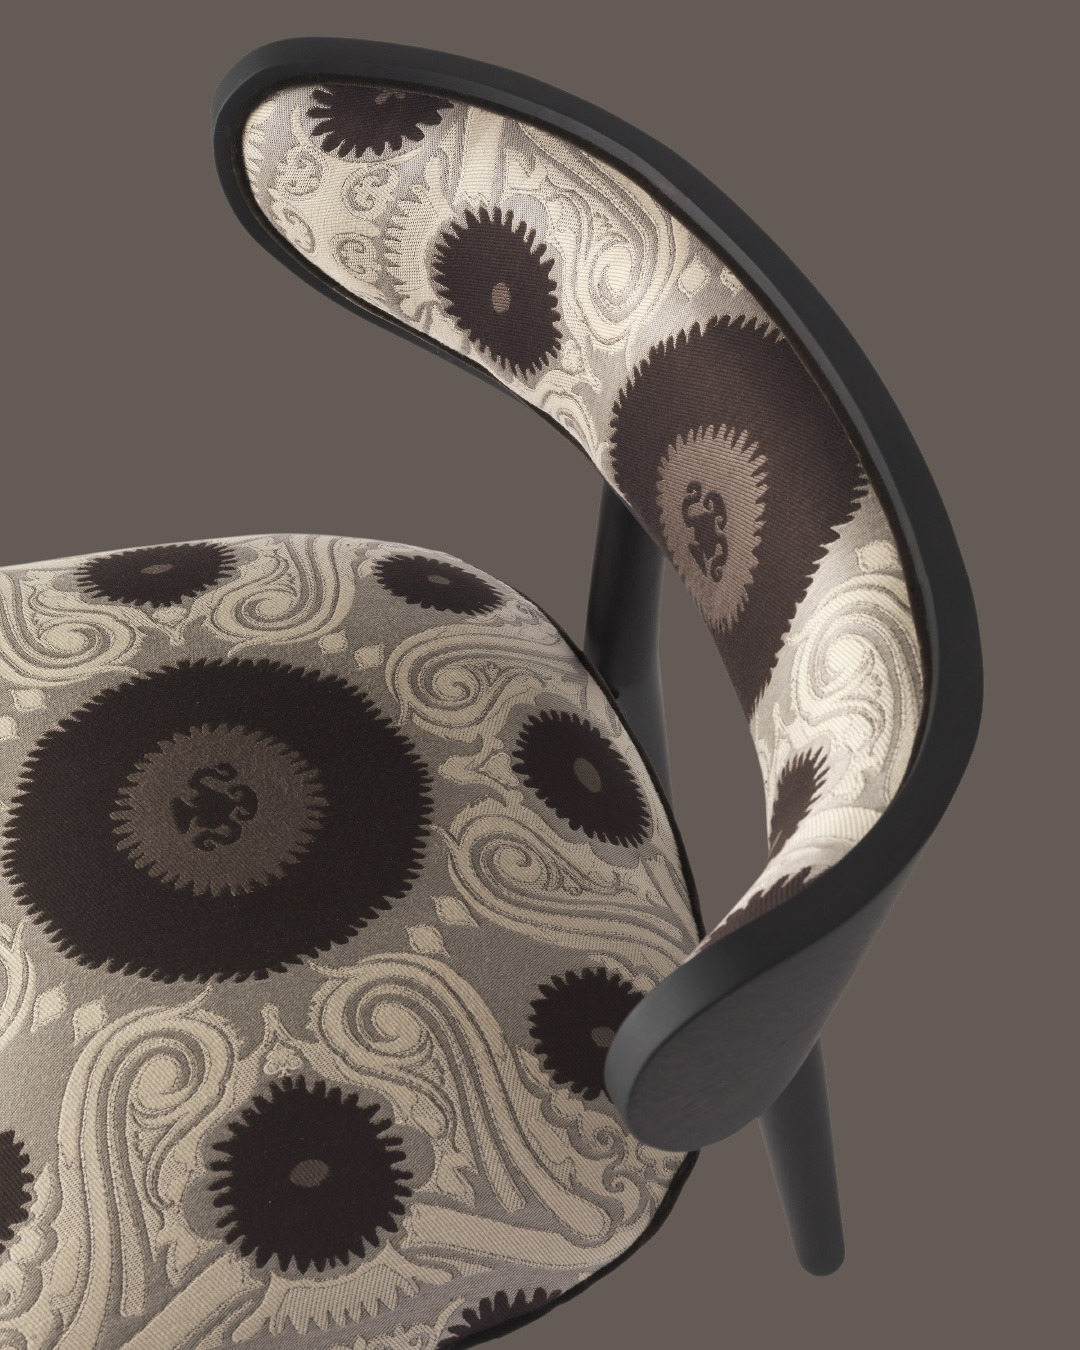 In the Shah armchair, the neutral color ...